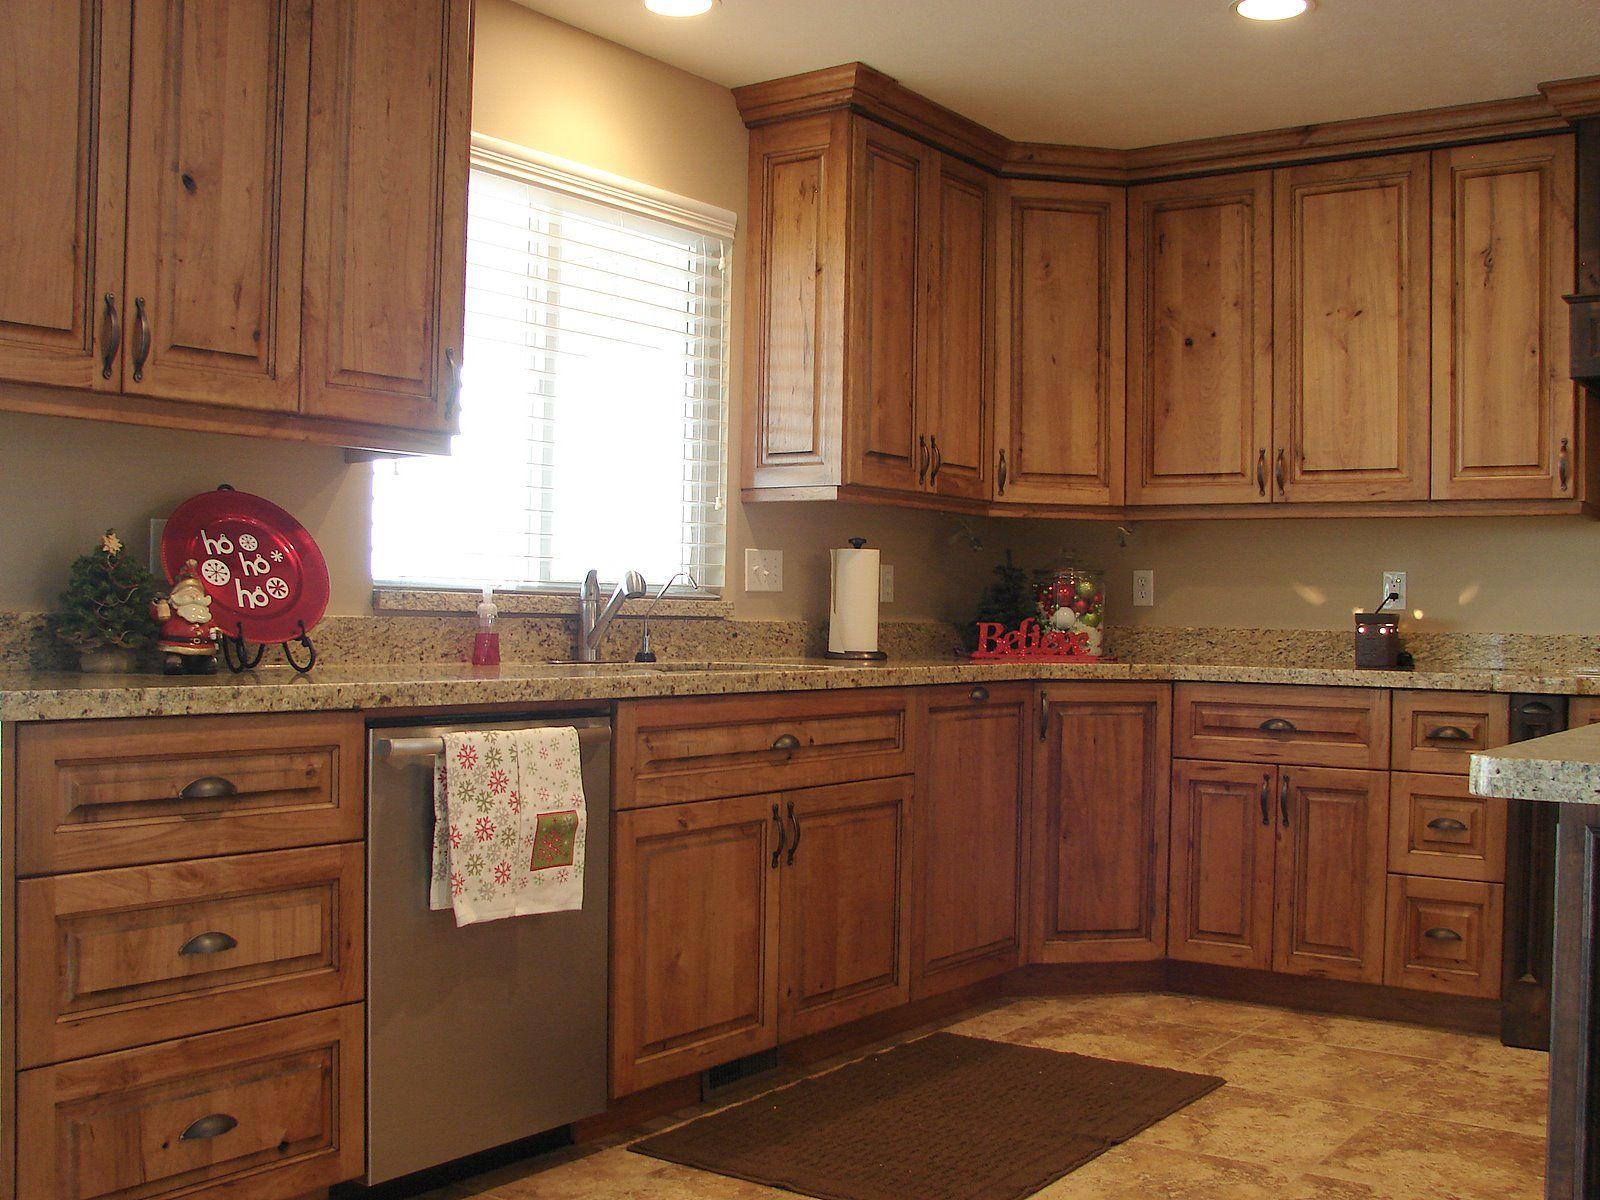 kitchen cabinets kitchen cabinets rustic farmhouse kitchen cabinets Rustic Cherry Cabinets